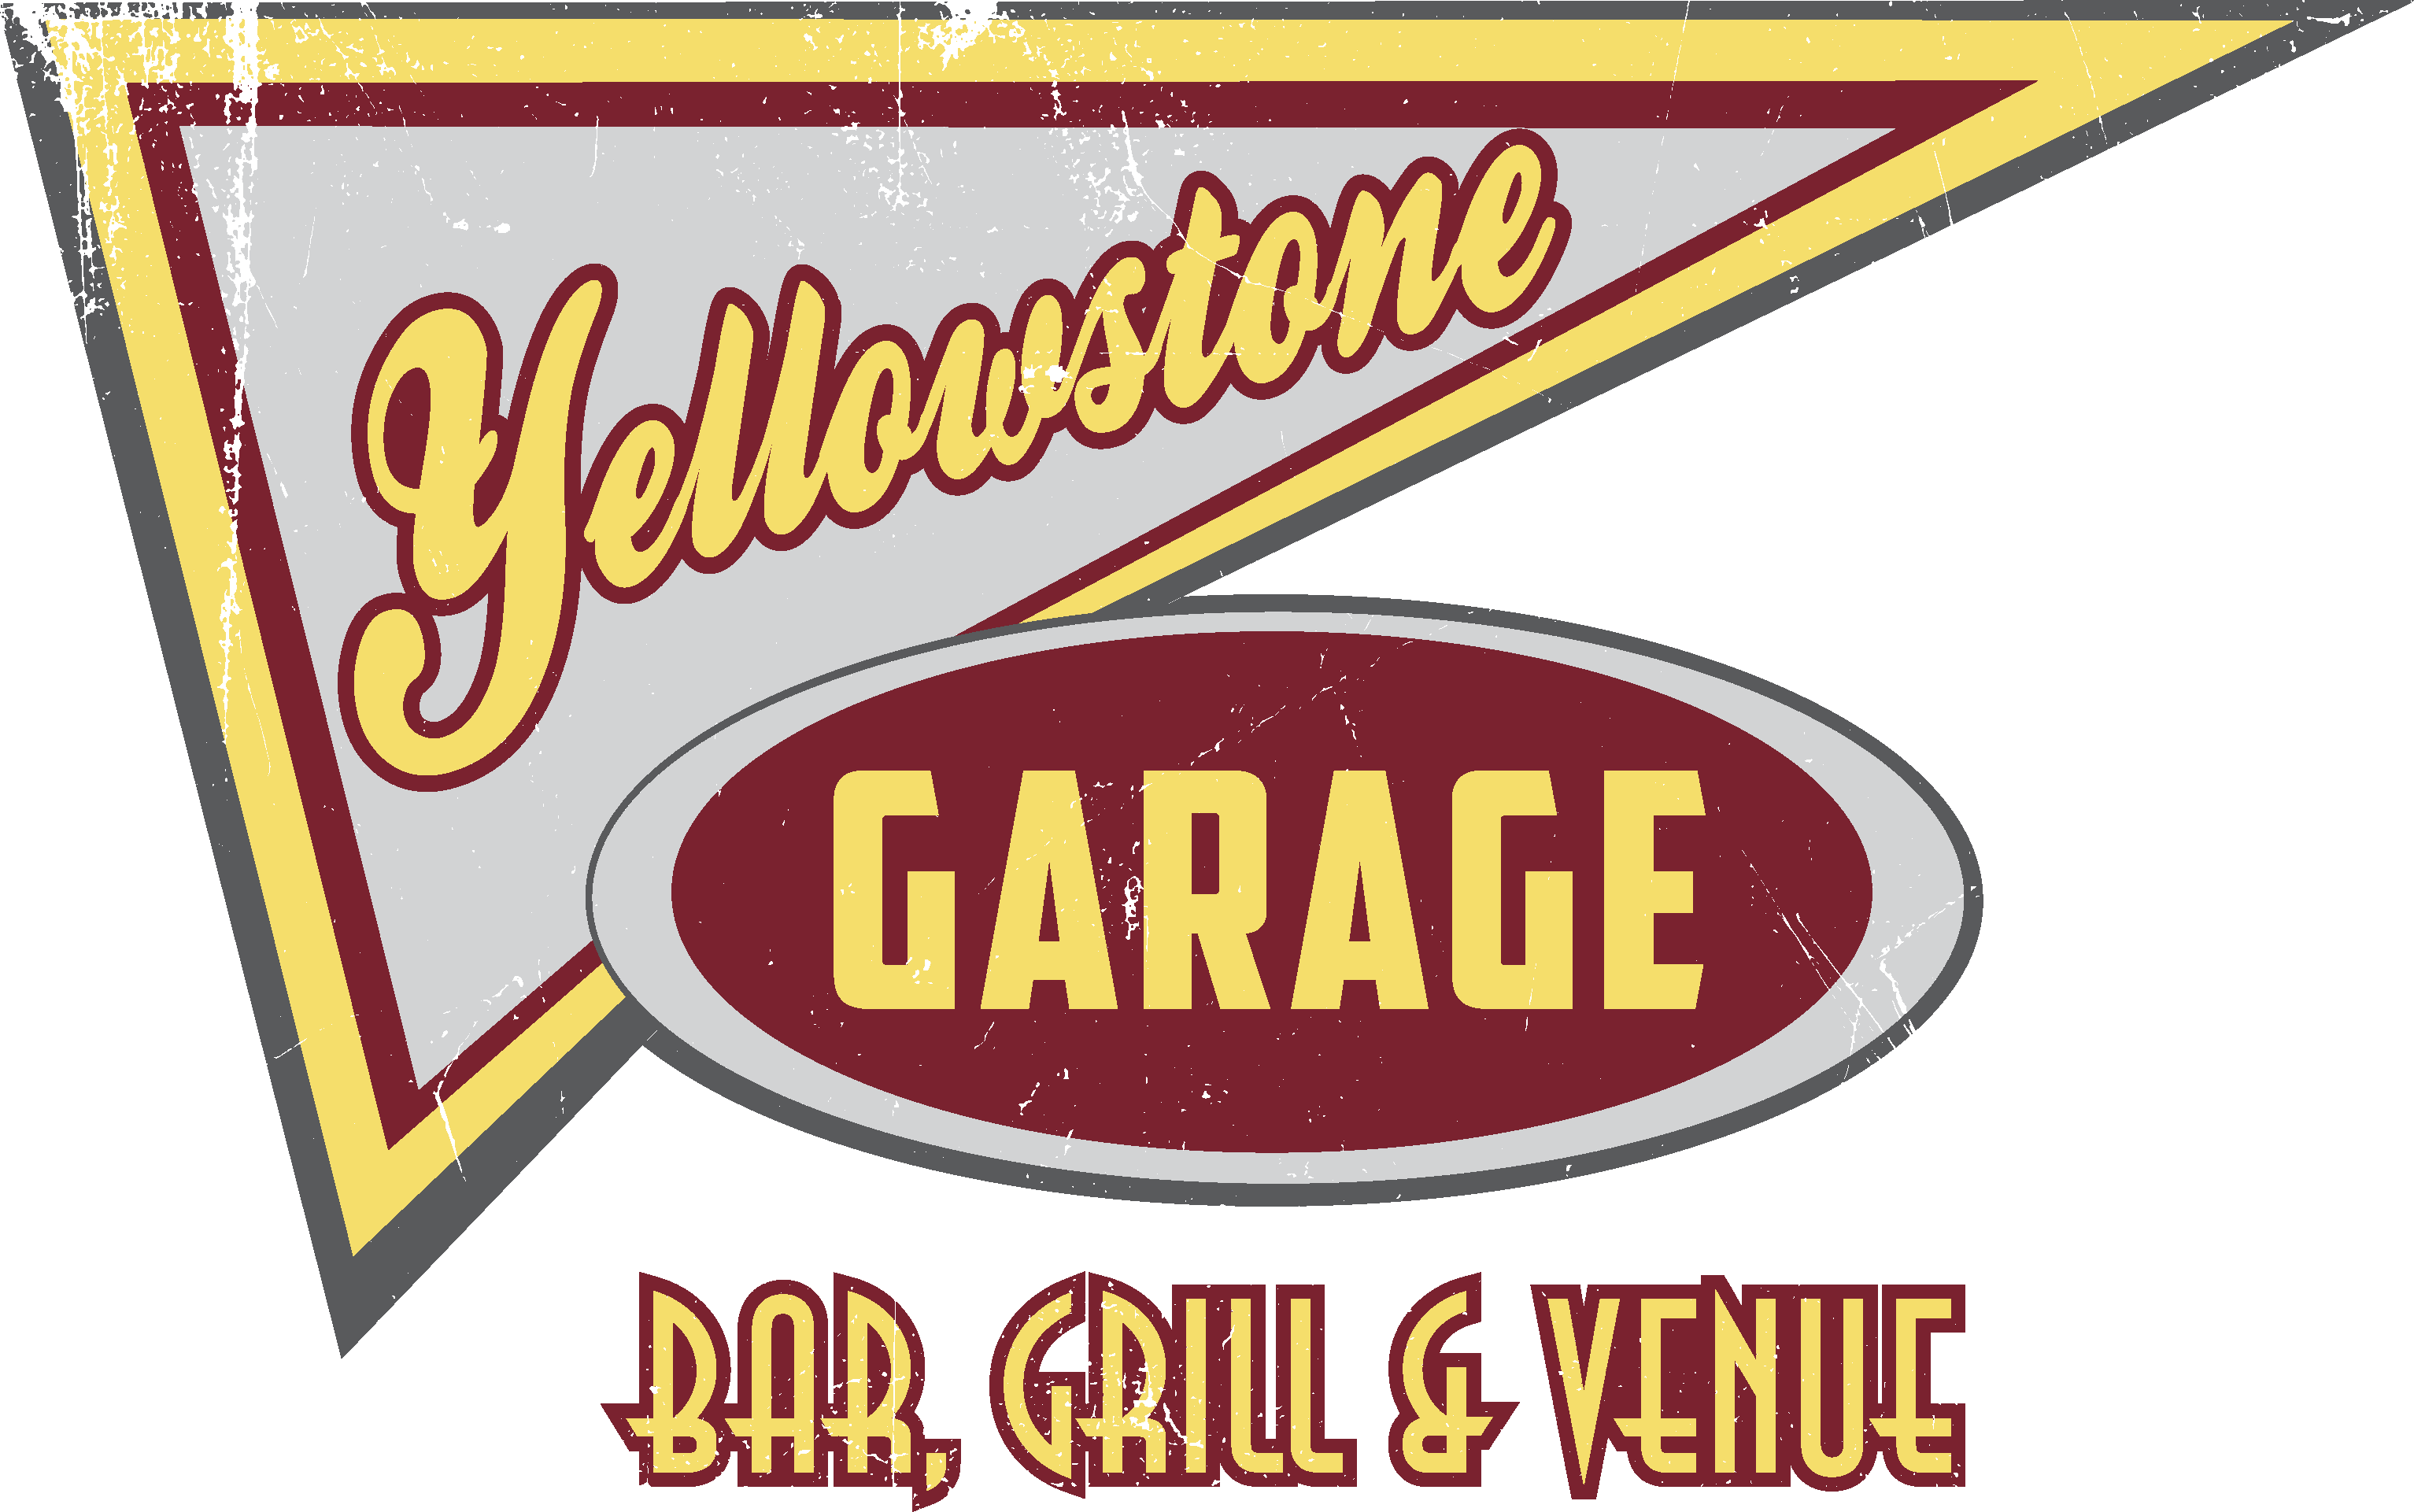 yellowstone garage bar, gril and venue